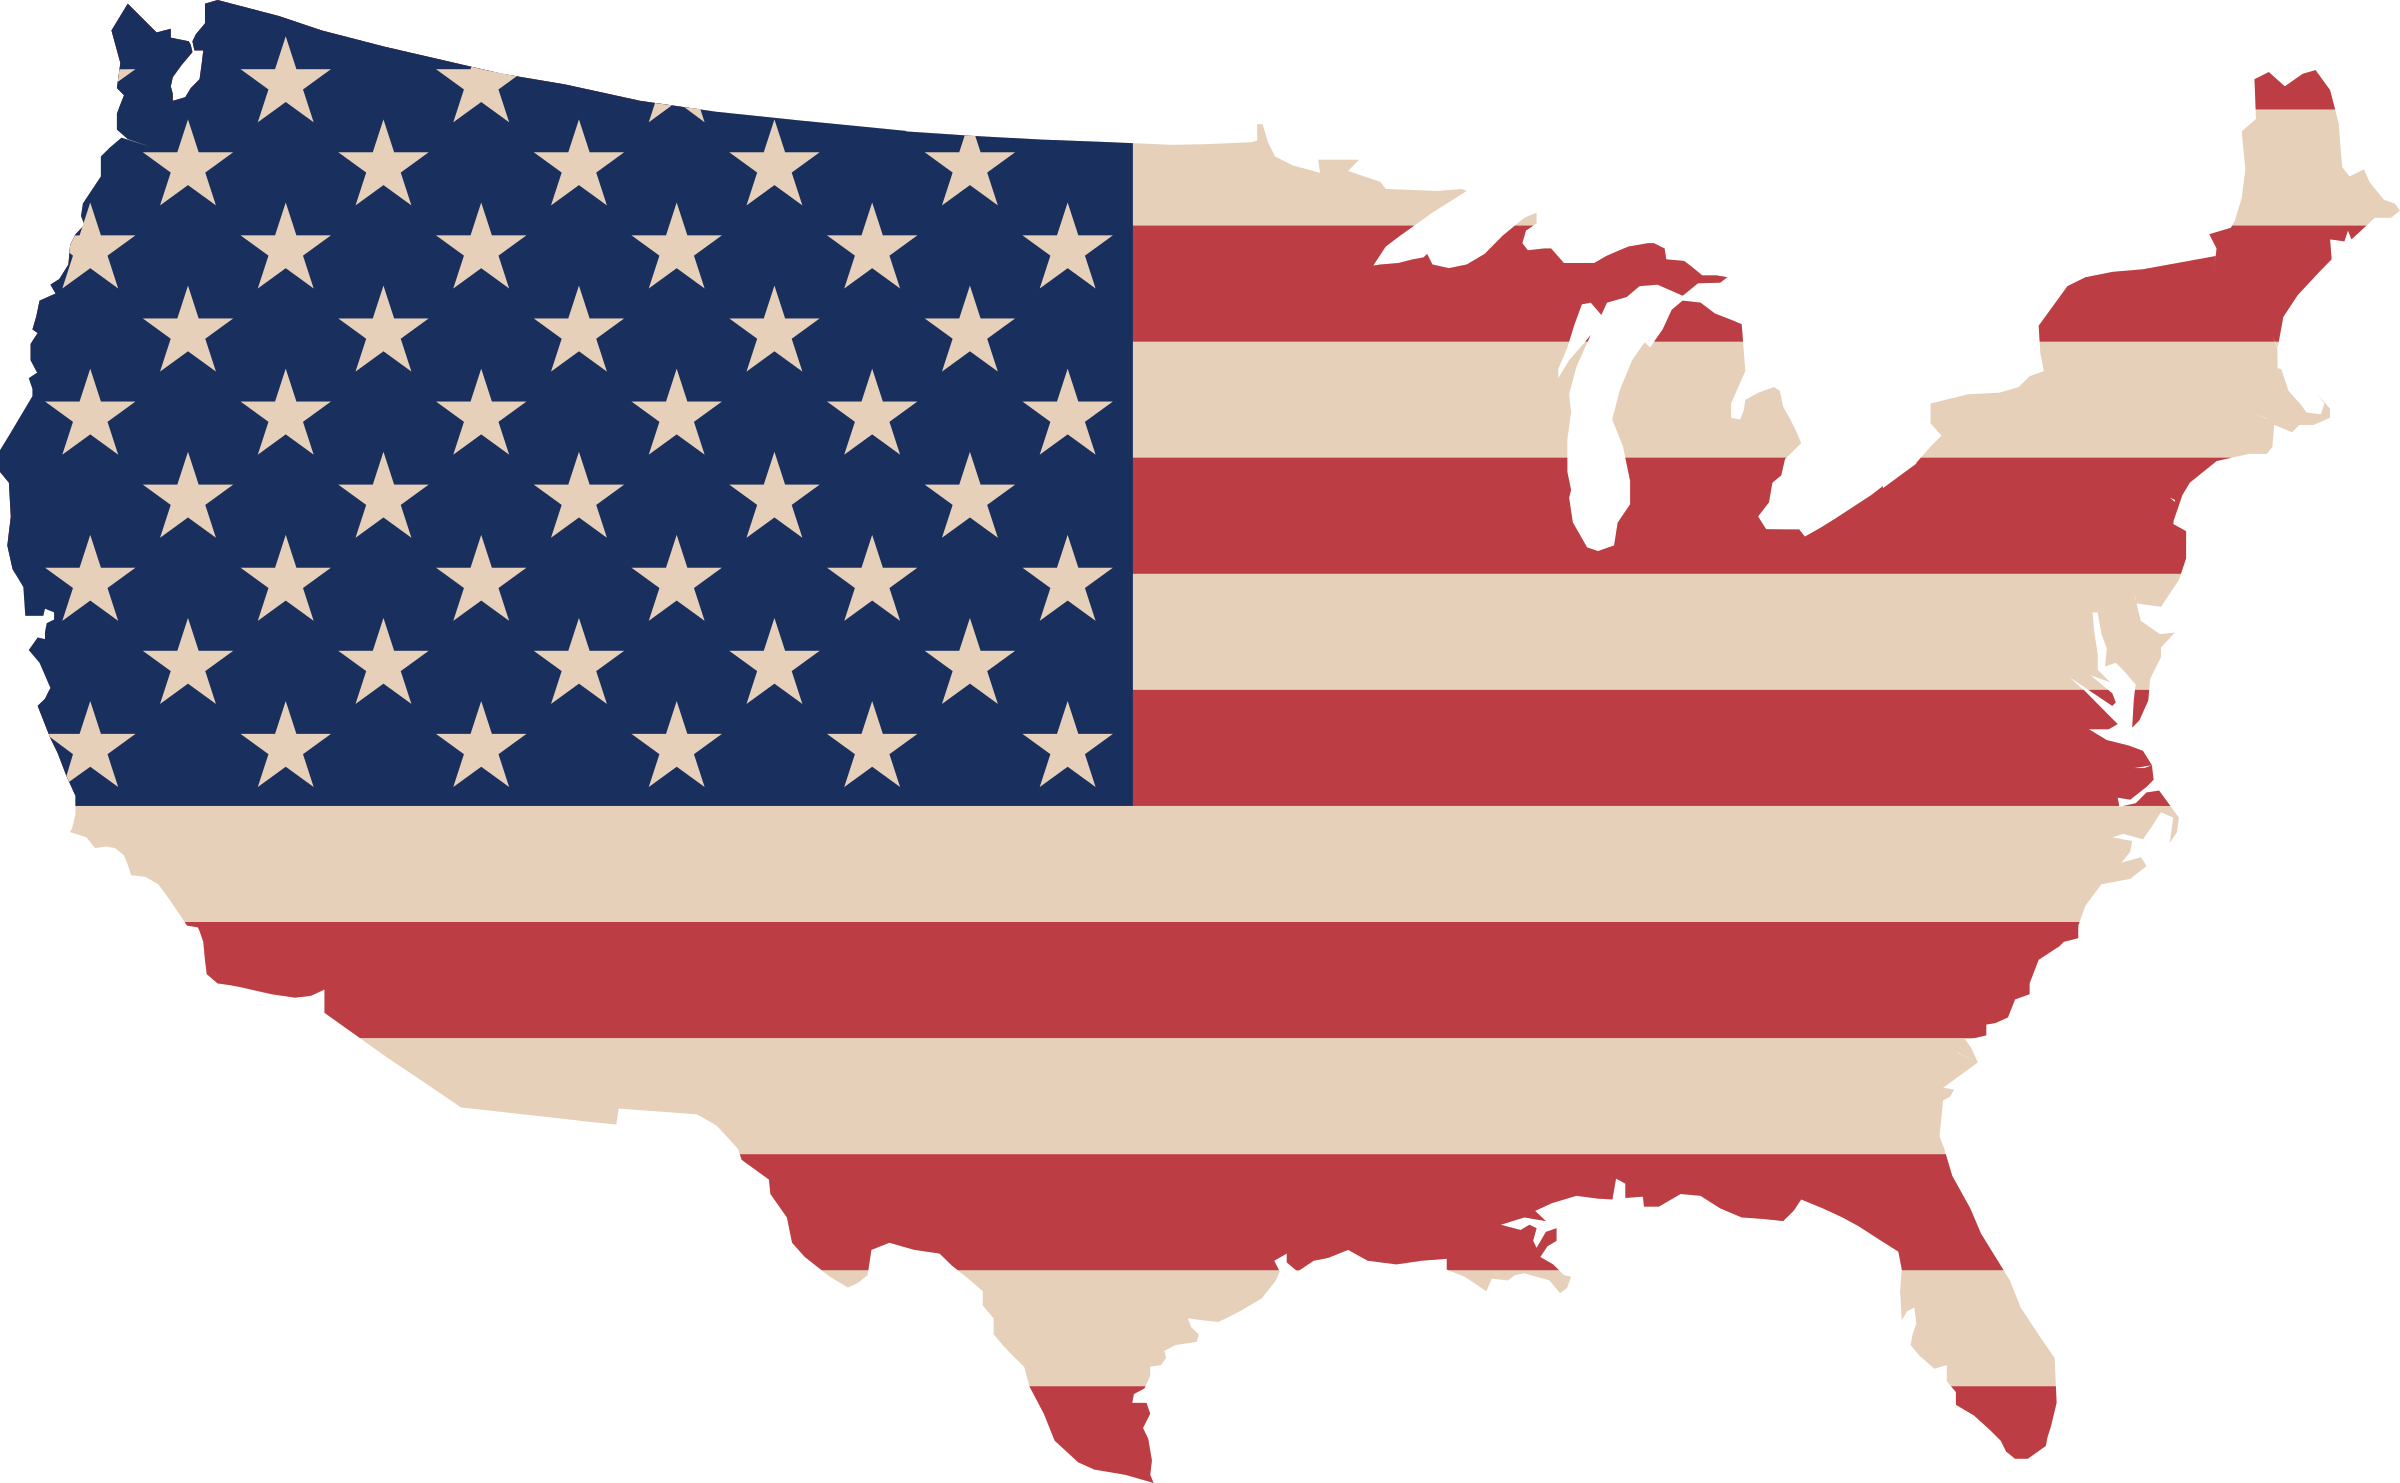 Usa flag icon png. Map and icons free